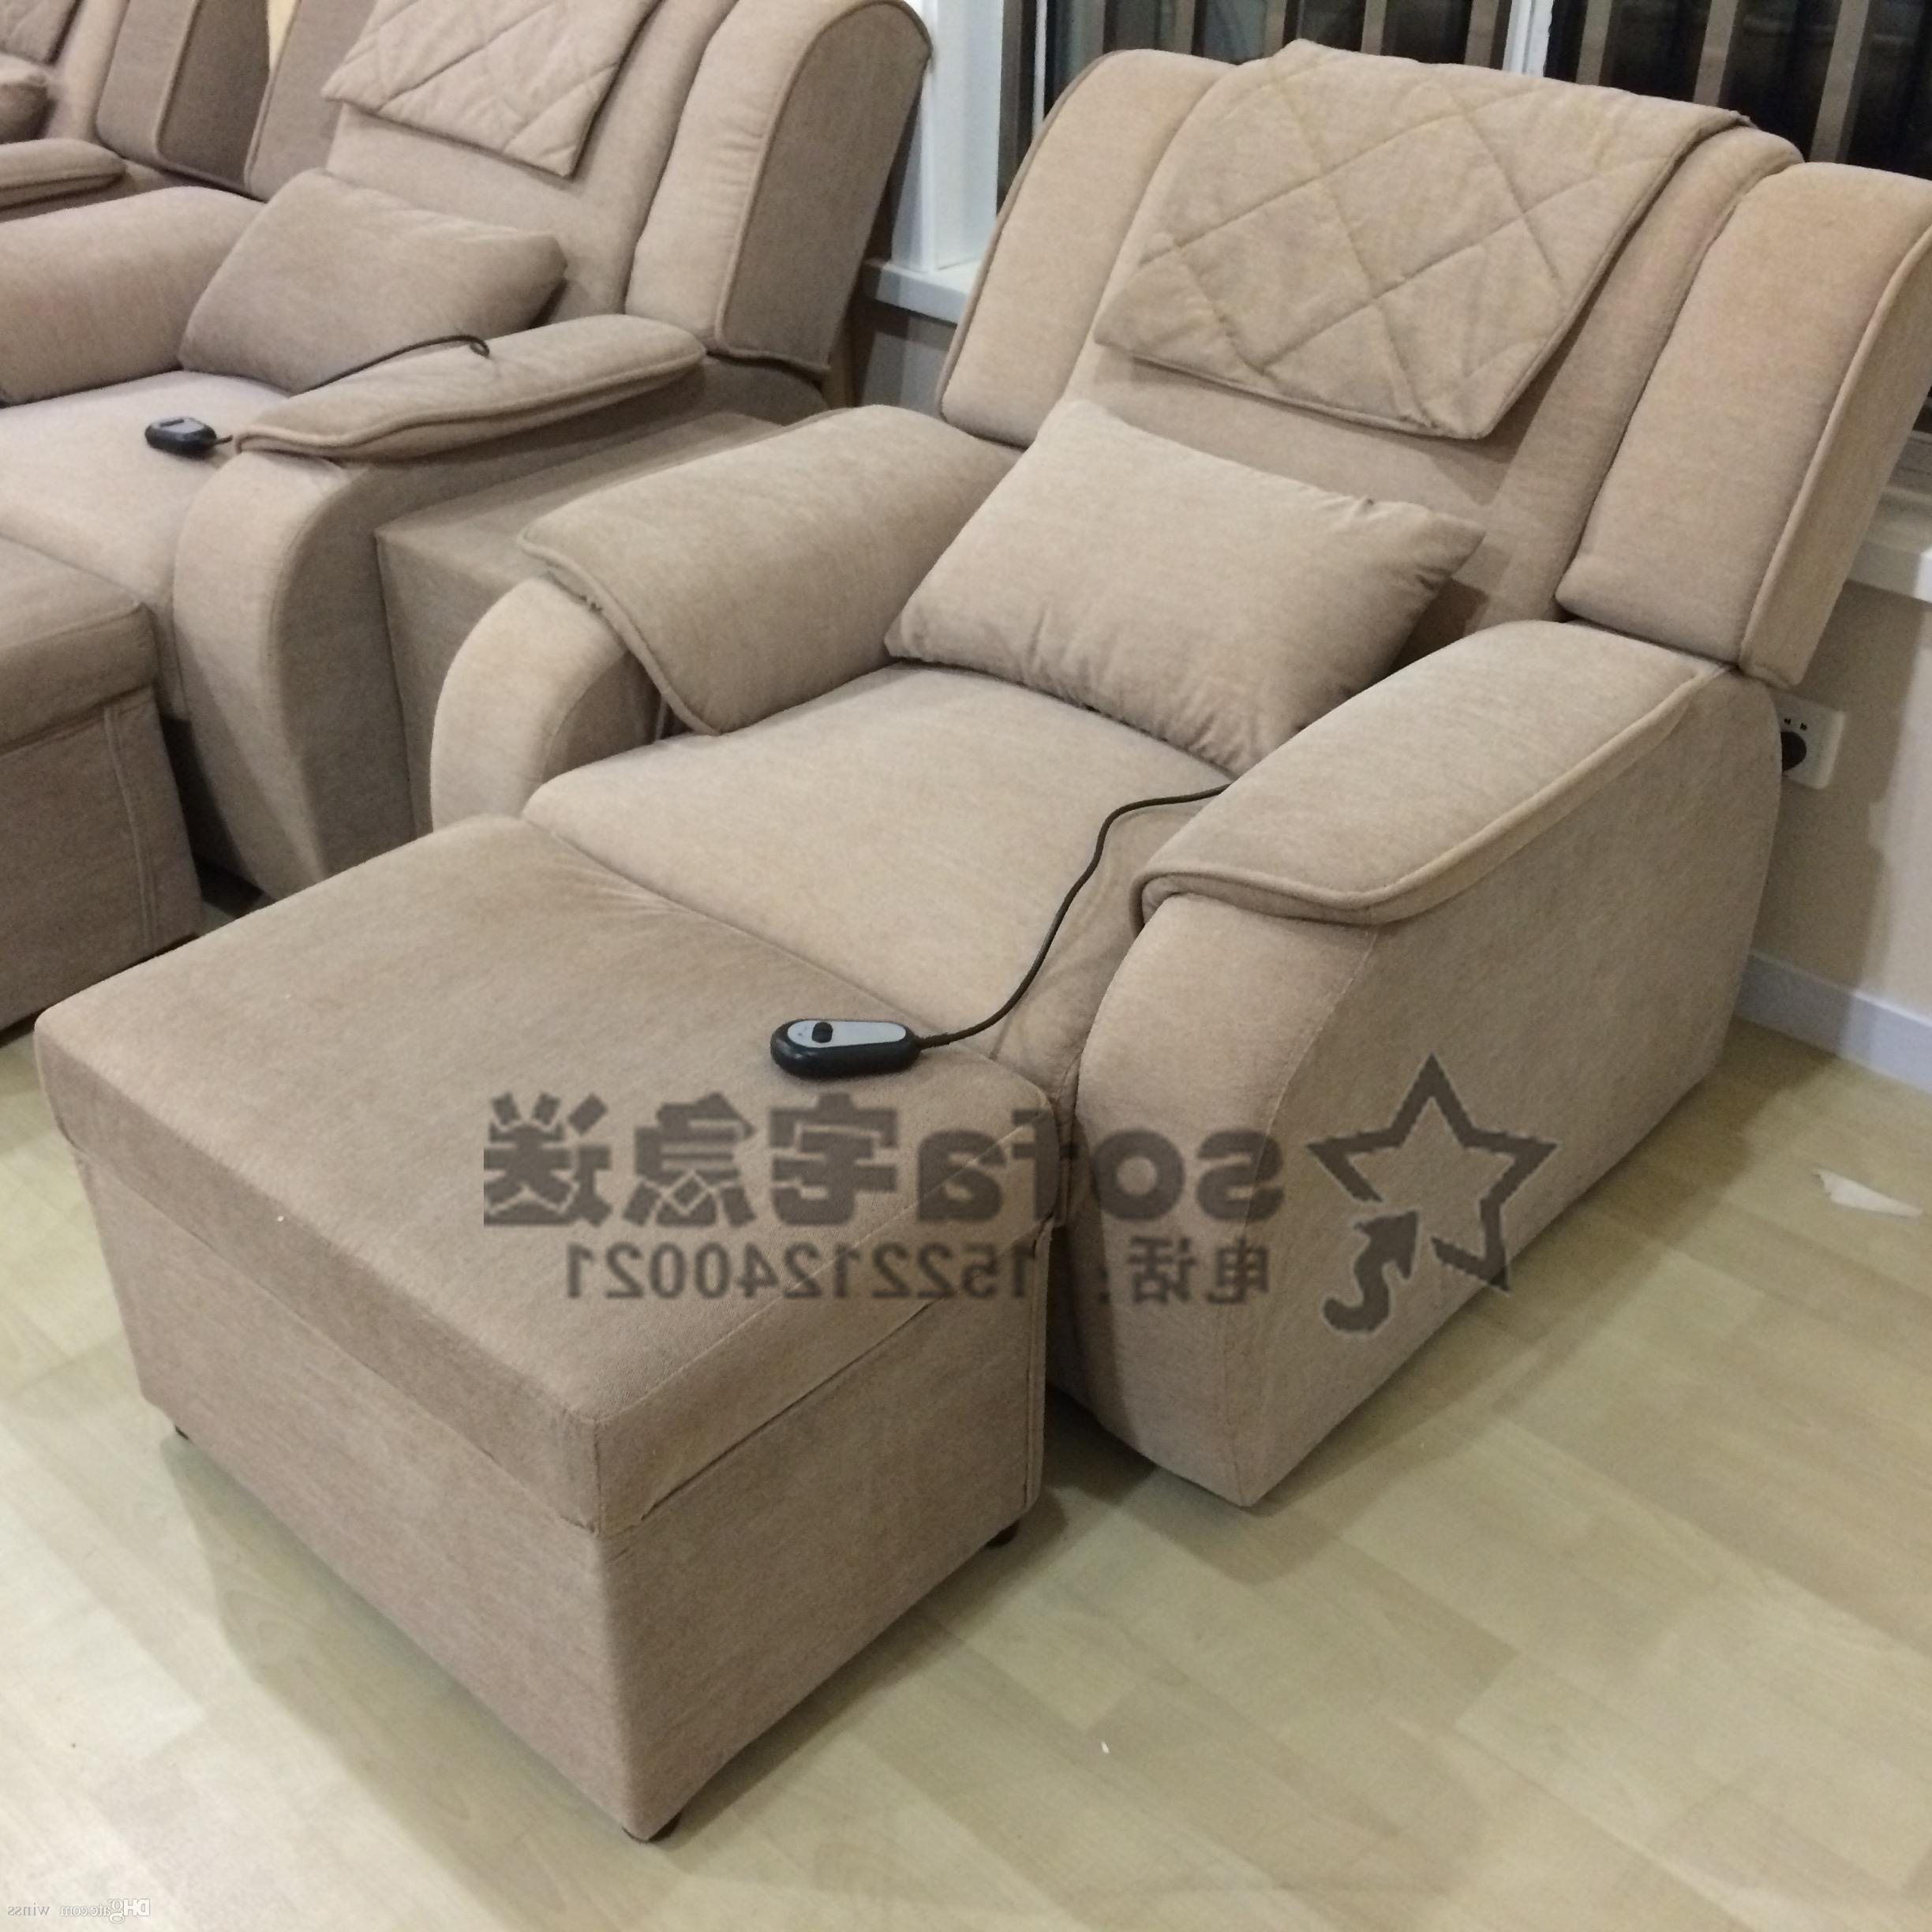 Foot Massage Sofa Chairs With Regard To Recent Easylovely Foot Massage Chair In Modern Home Decoration Idea C (View 15 of 20)